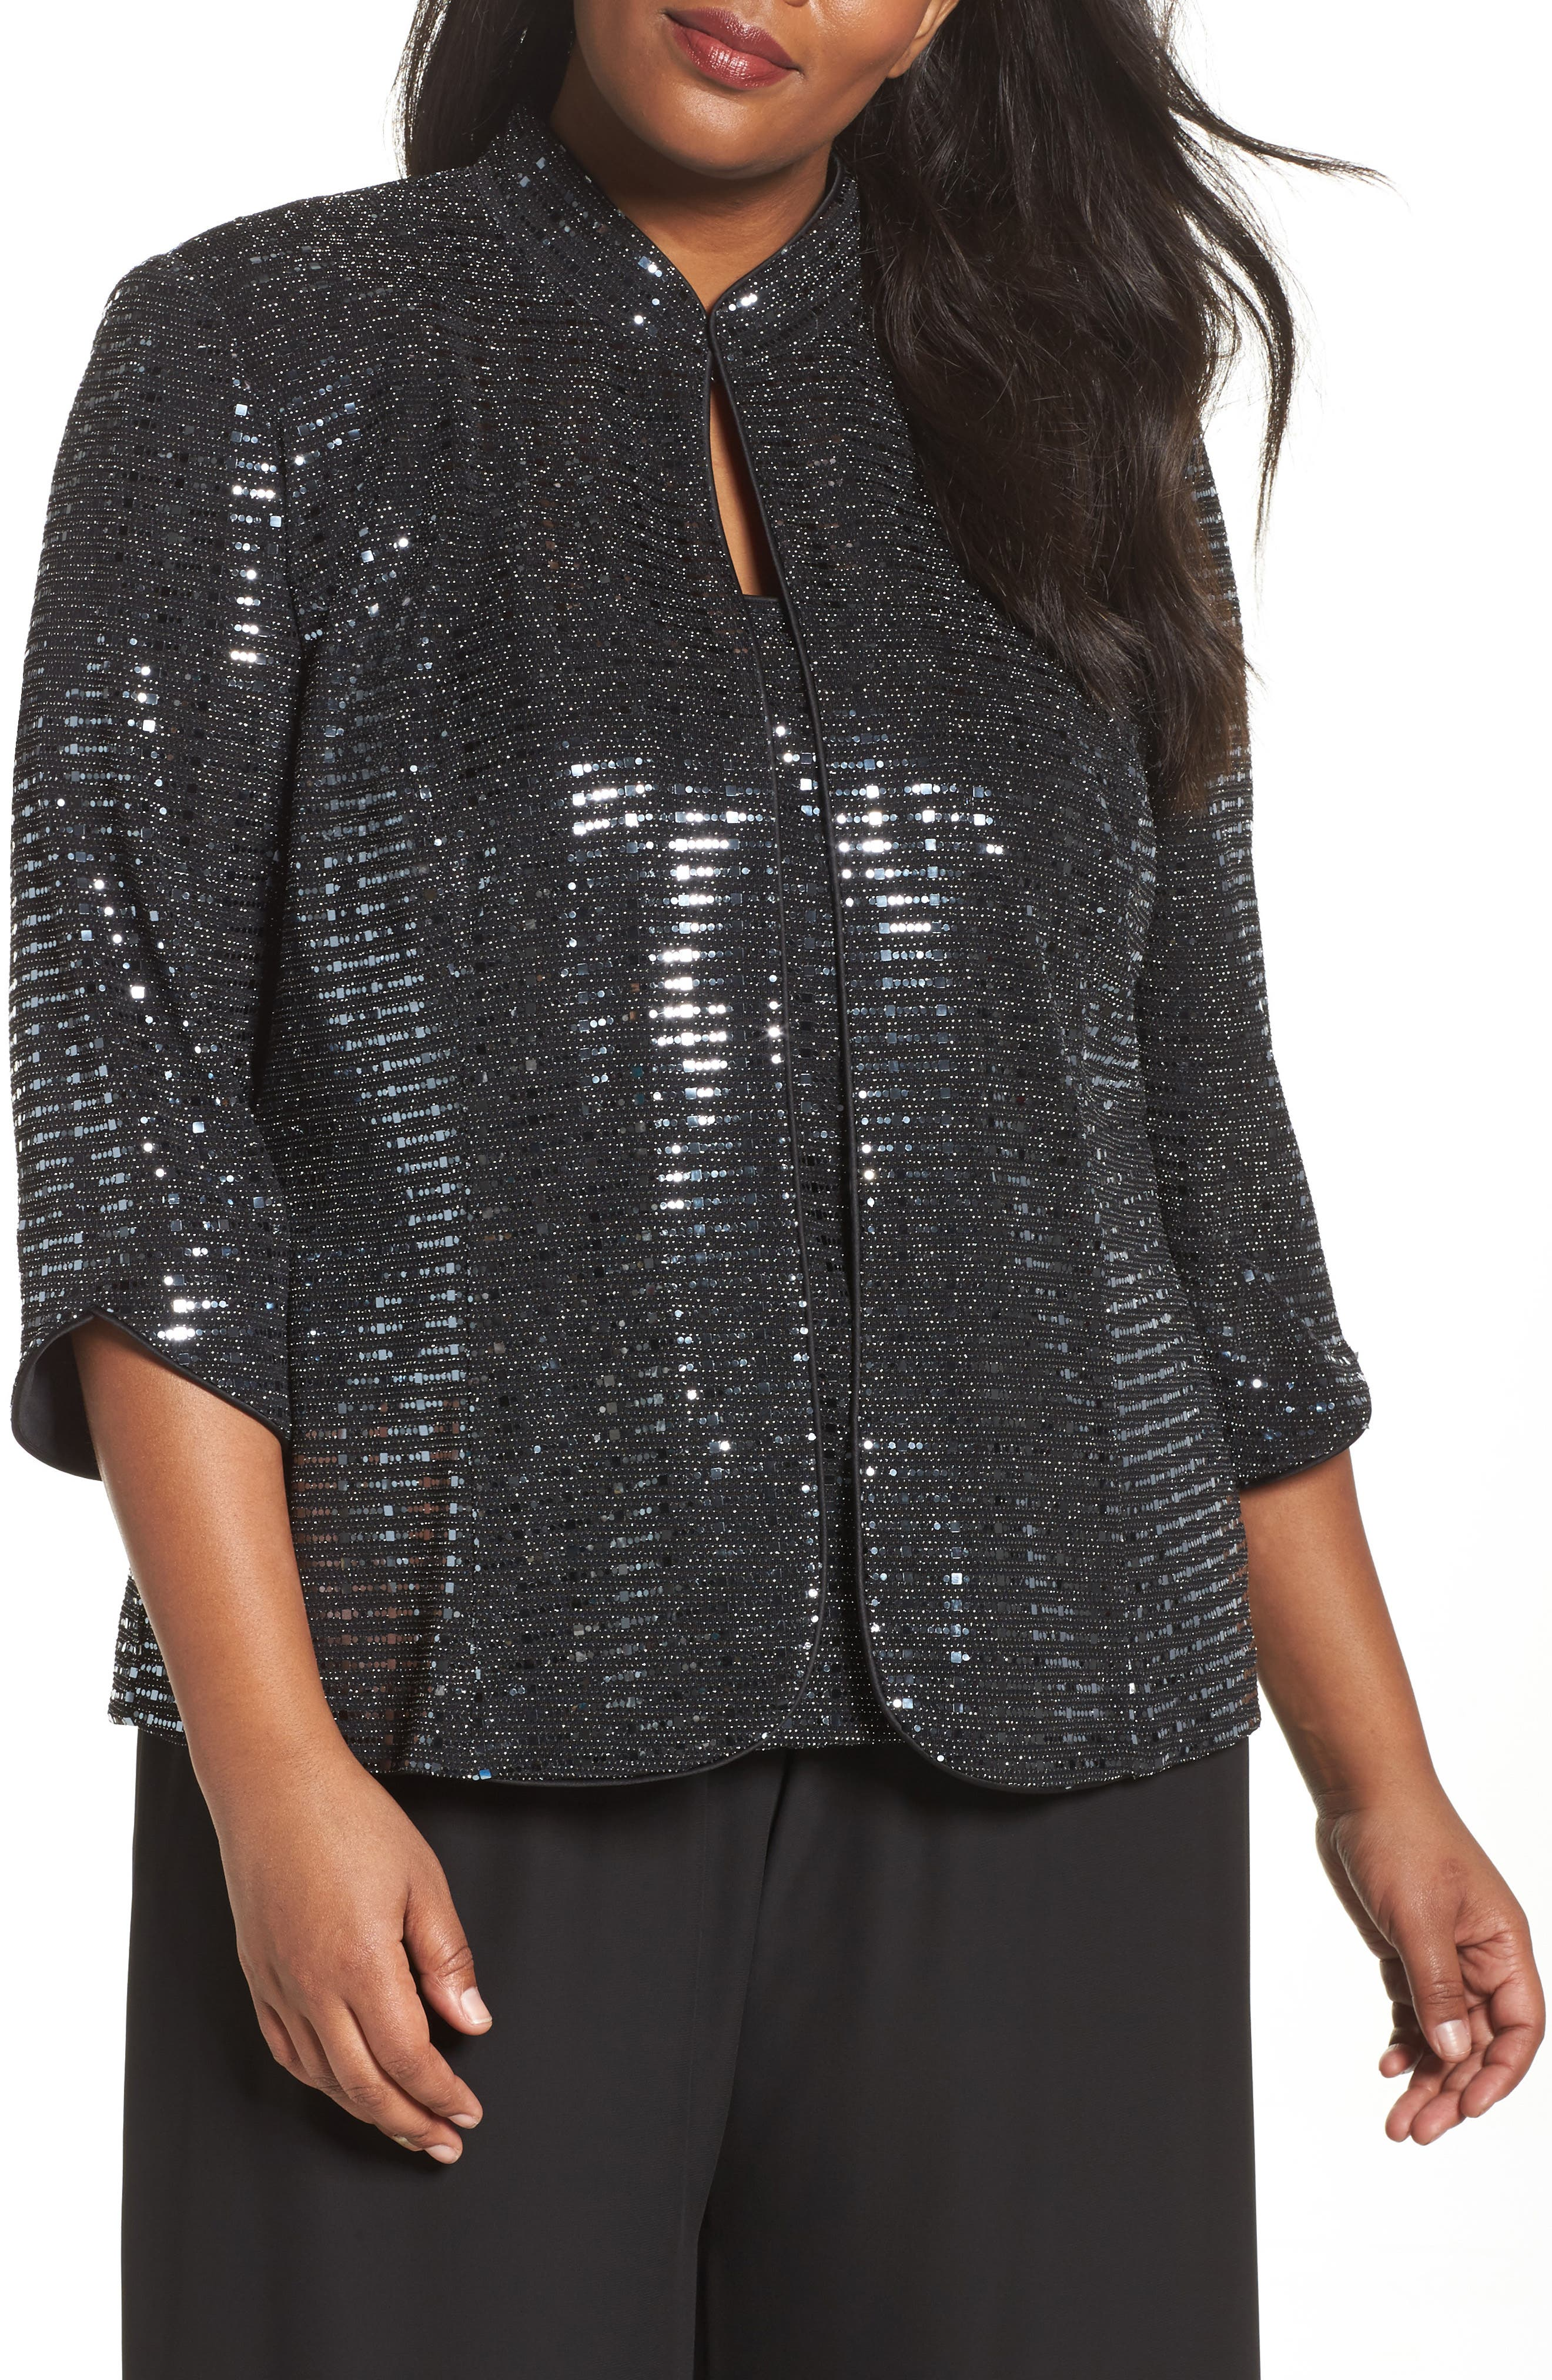 Alternate Image 1 Selected - Alex Evenings Sequin Mandarian Collar Twinset (Plus Size)